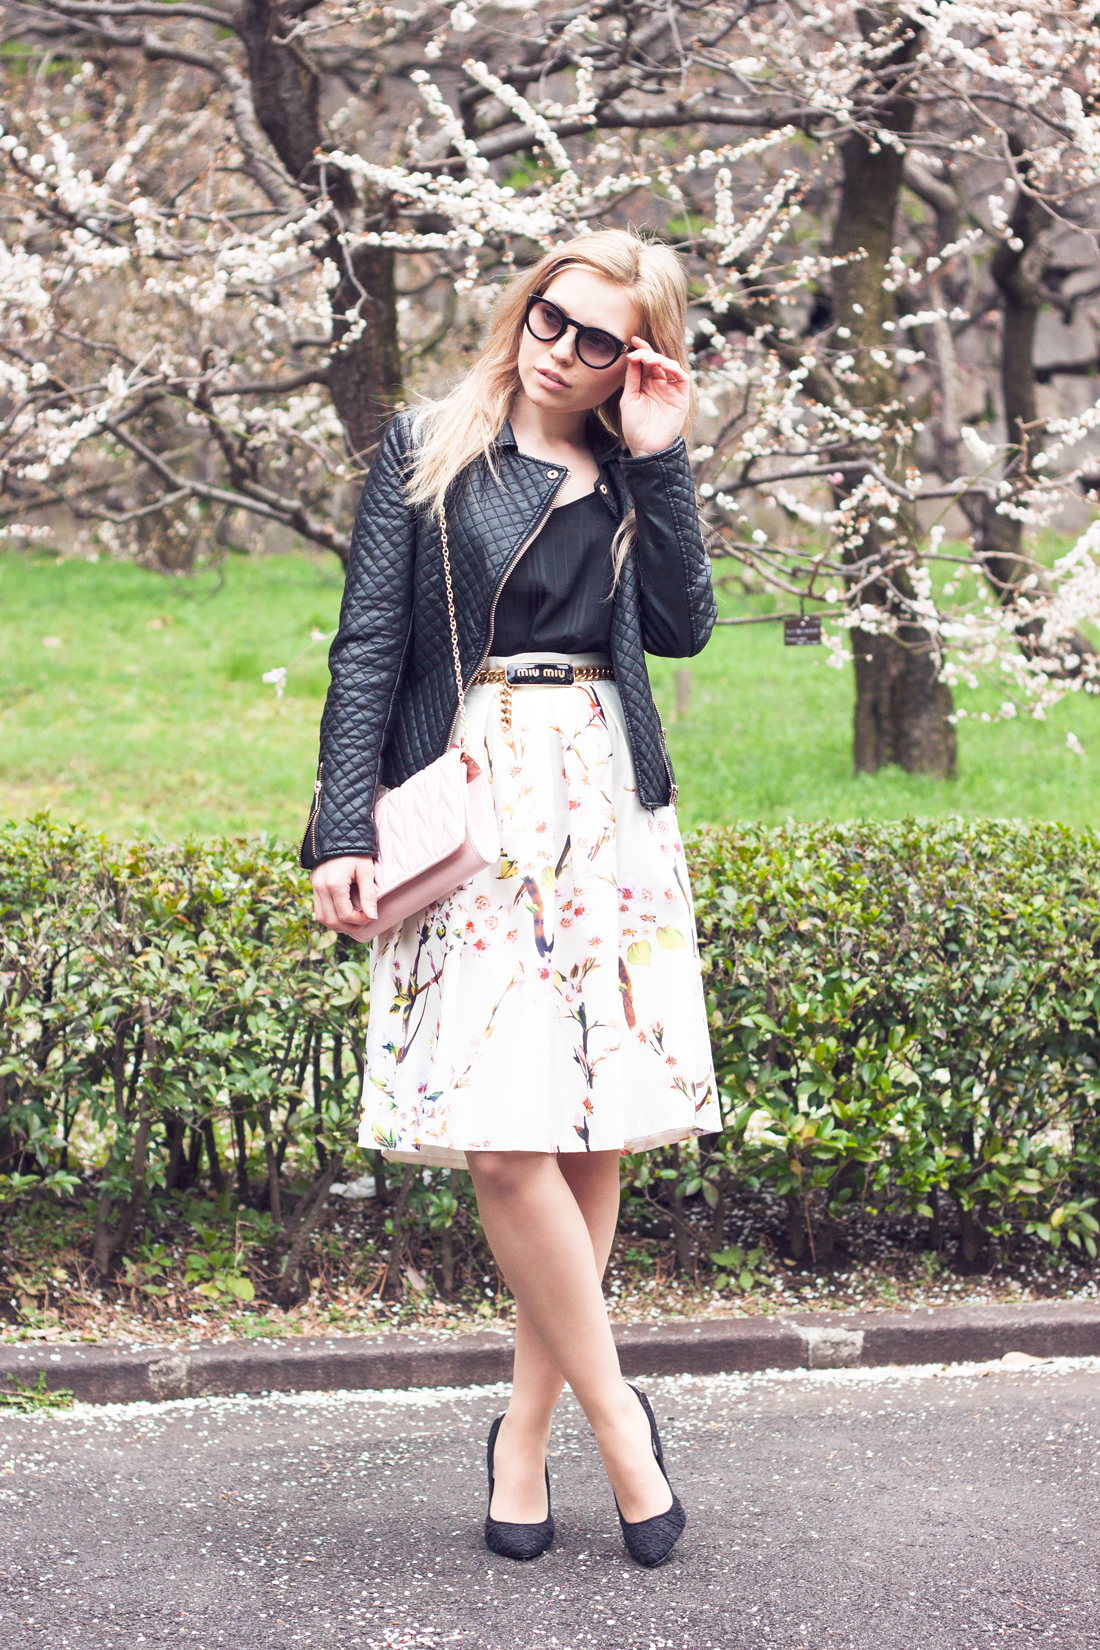 cherry blossom skirt, sakura, cherry blossoms, japan, tokyo spring, empire east gardens tokyo, leather jacket, quilted bag